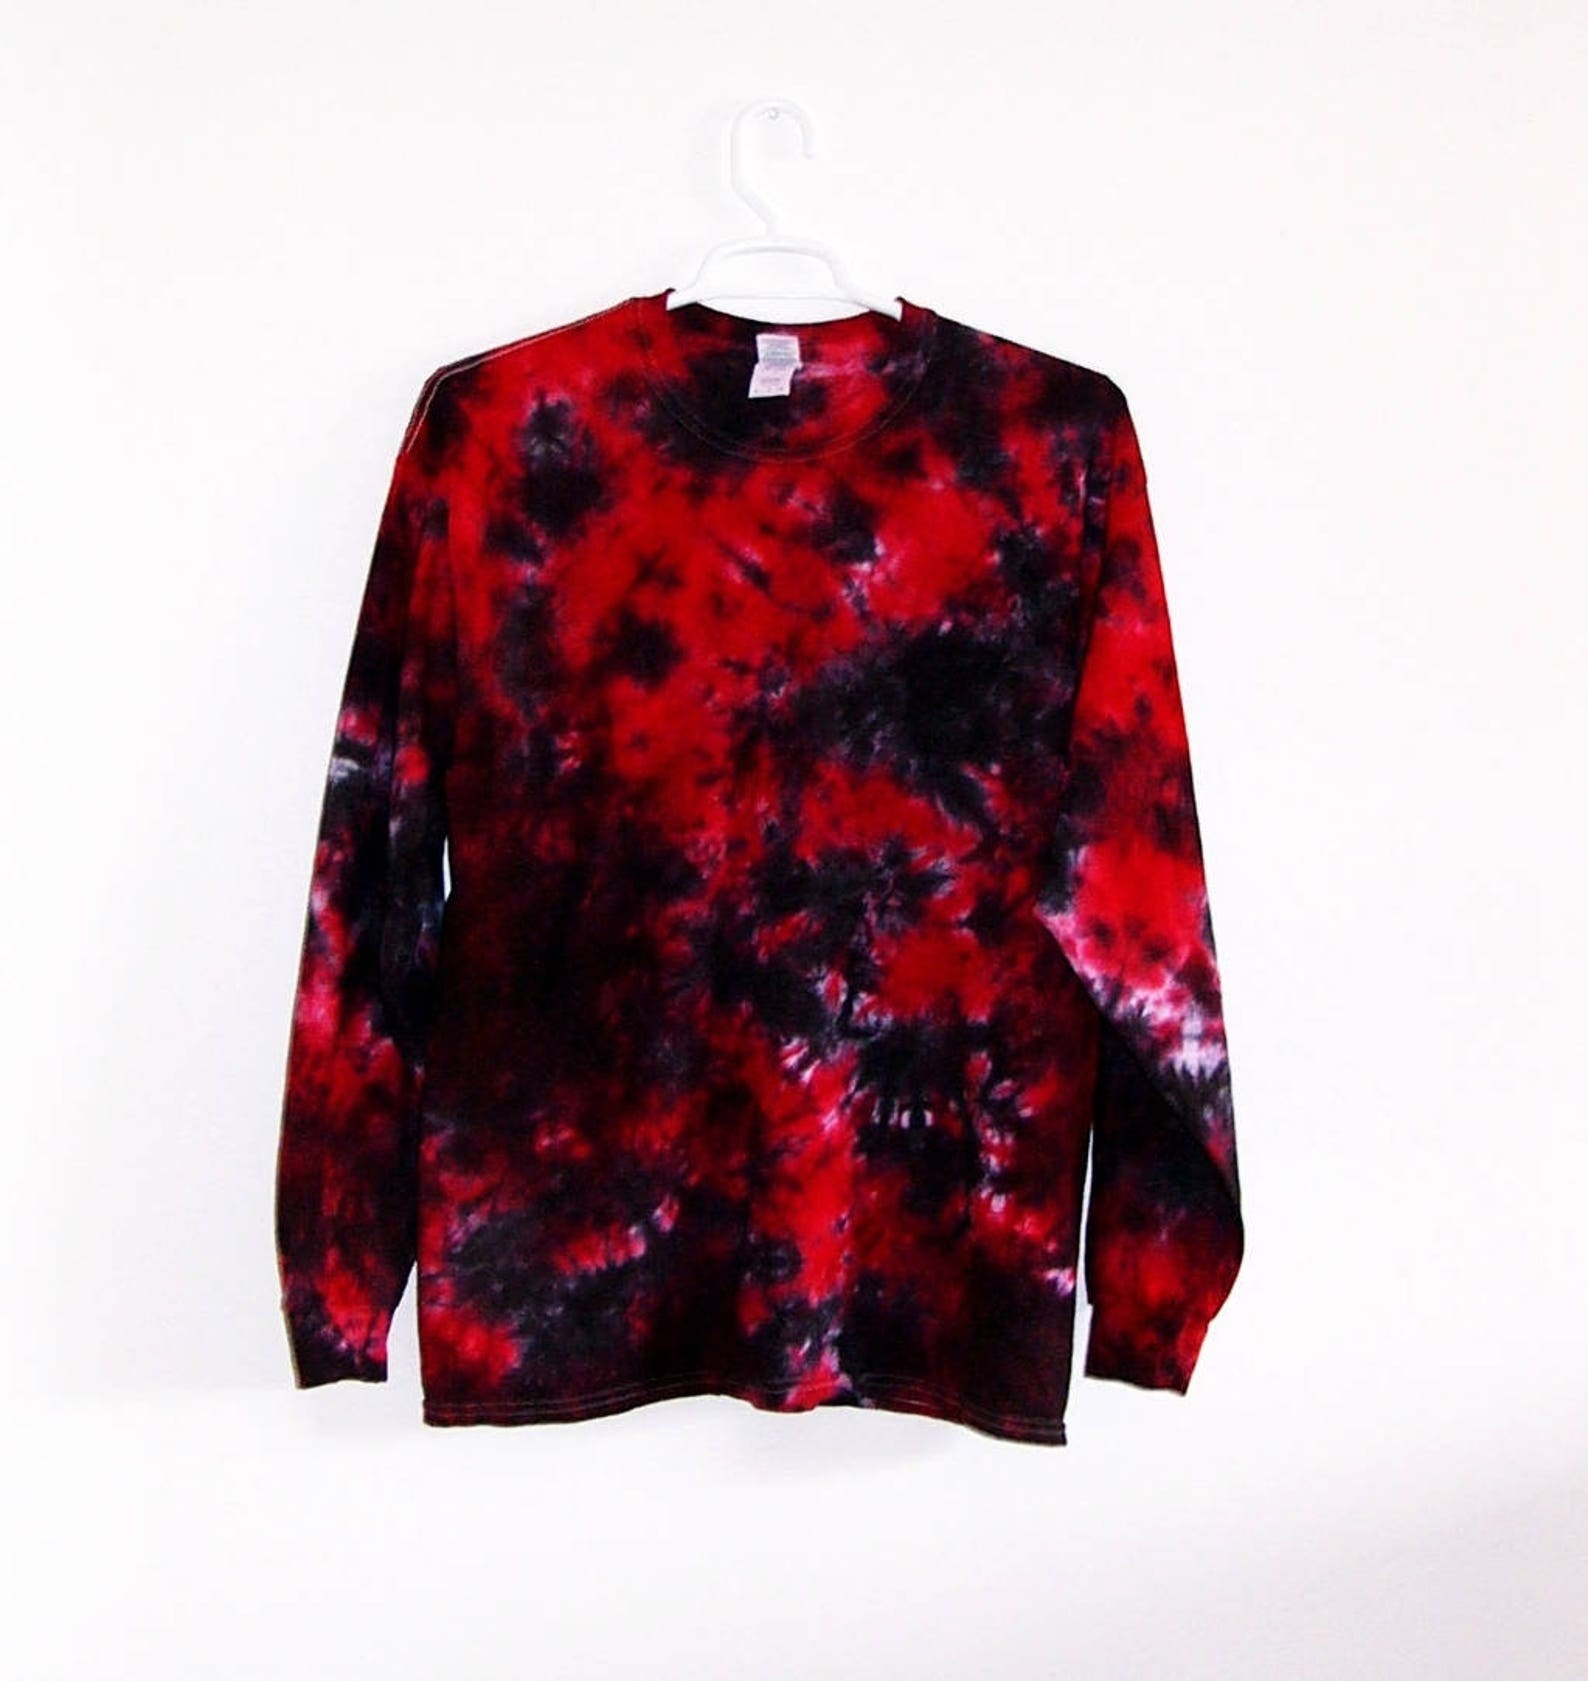 black and red tie-dye long sleeve shirt